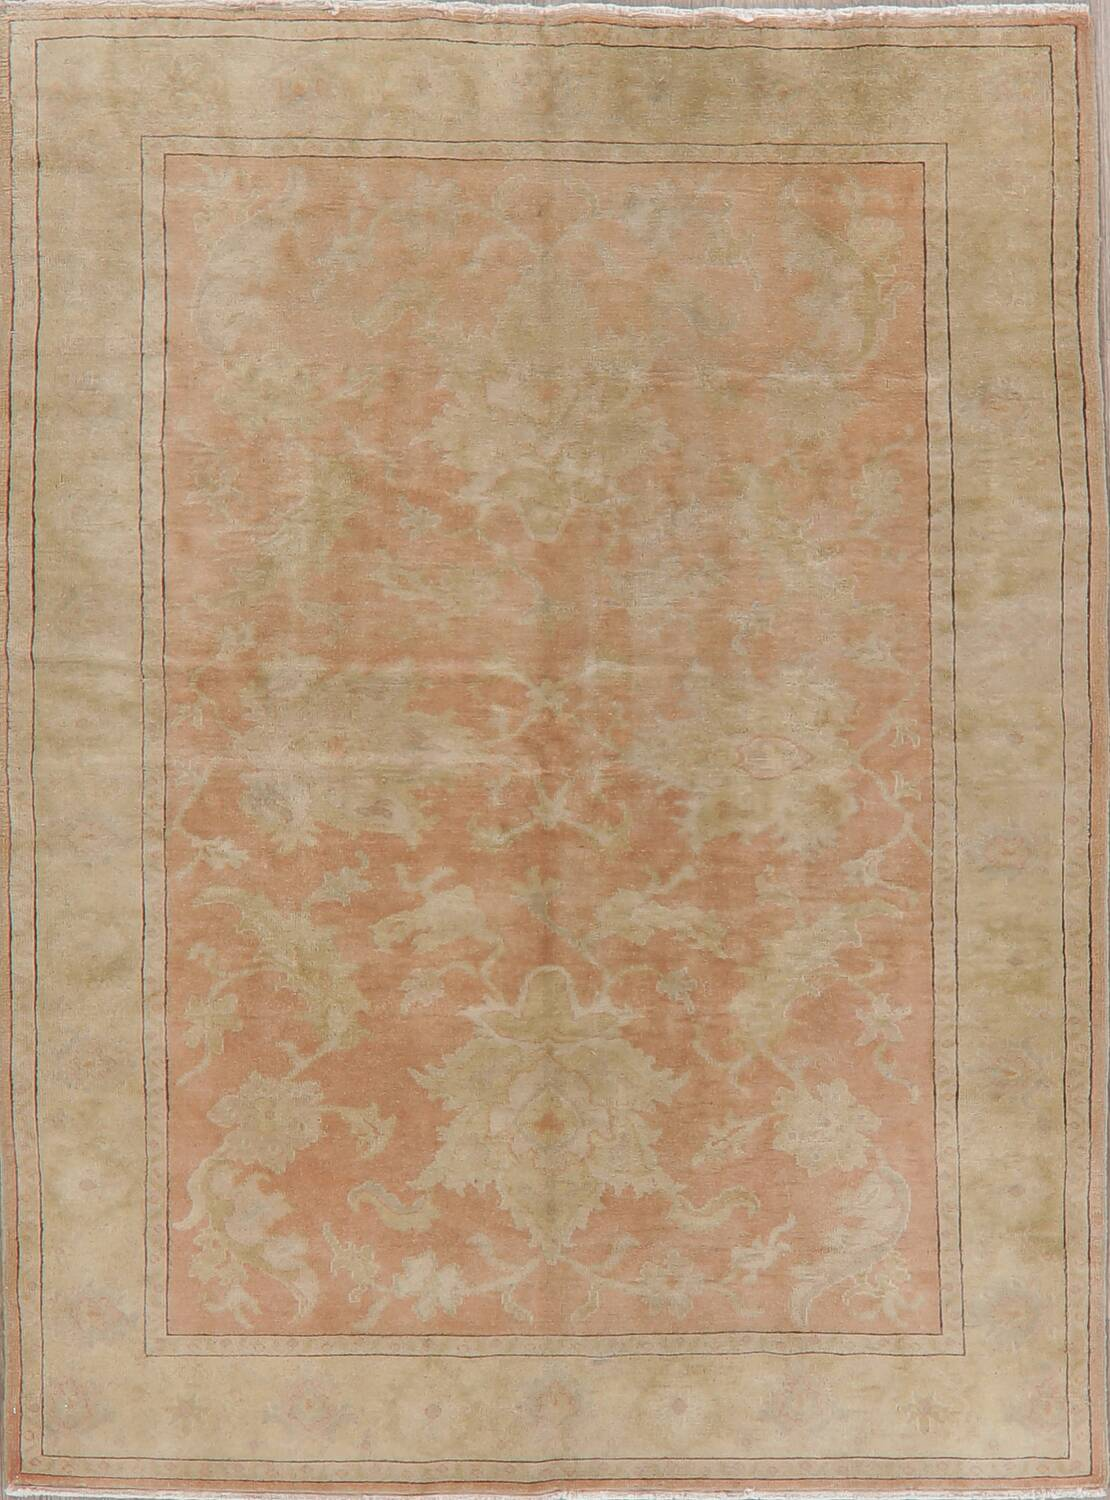 Vegetable Dye Antique Coral Peach Egyptian Area Rug 5x7 image 1